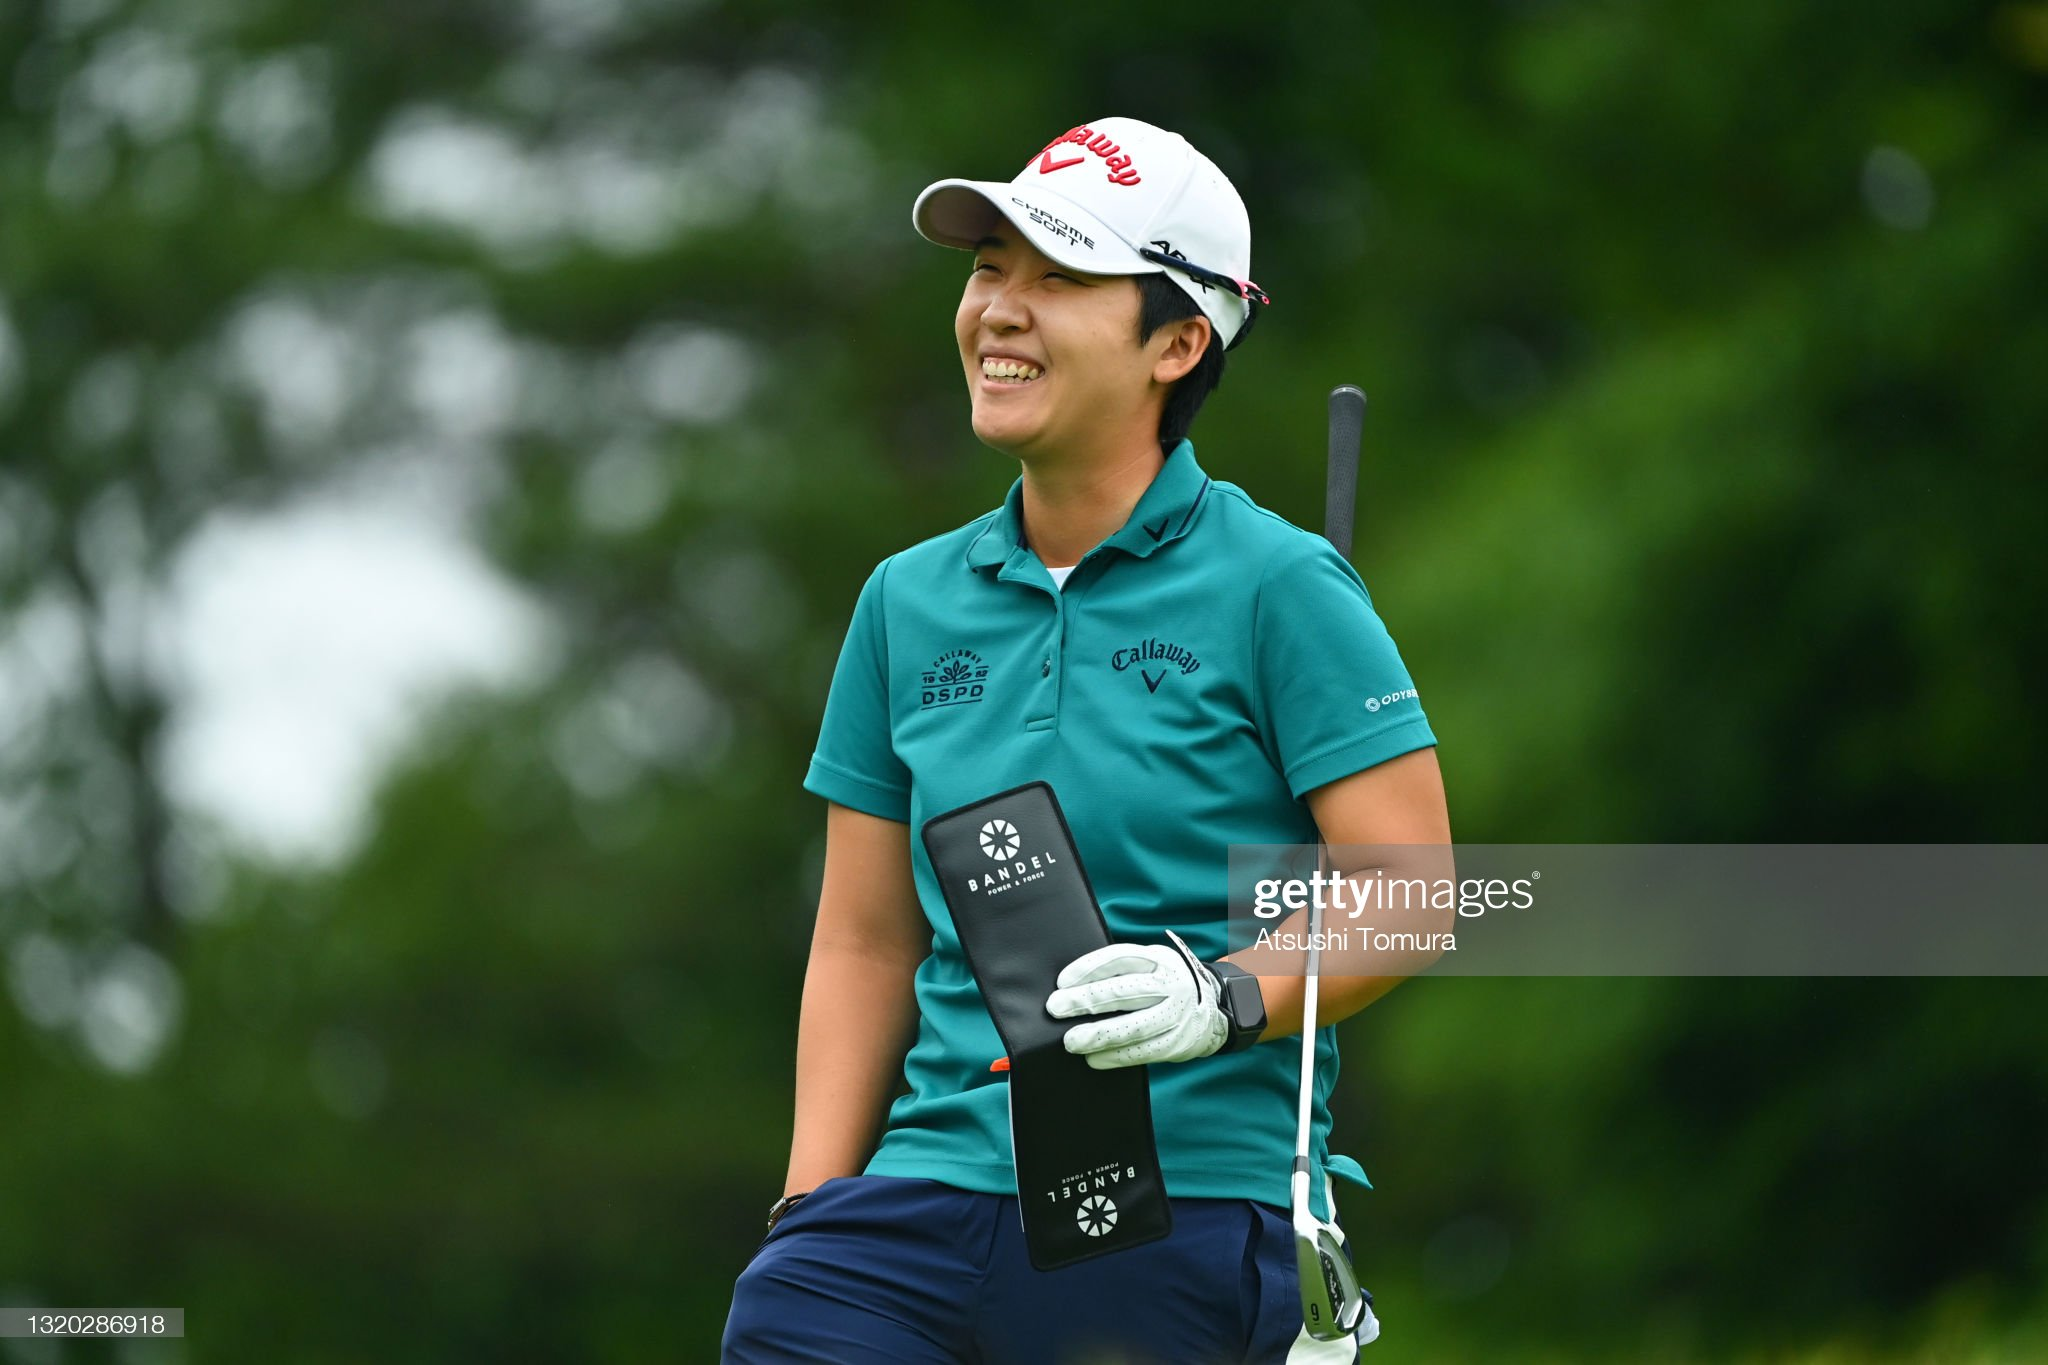 https://media.gettyimages.com/photos/heekyong-bae-of-south-korea-smiles-on-the-3rd-tee-during-the-first-picture-id1320286918?s=2048x2048